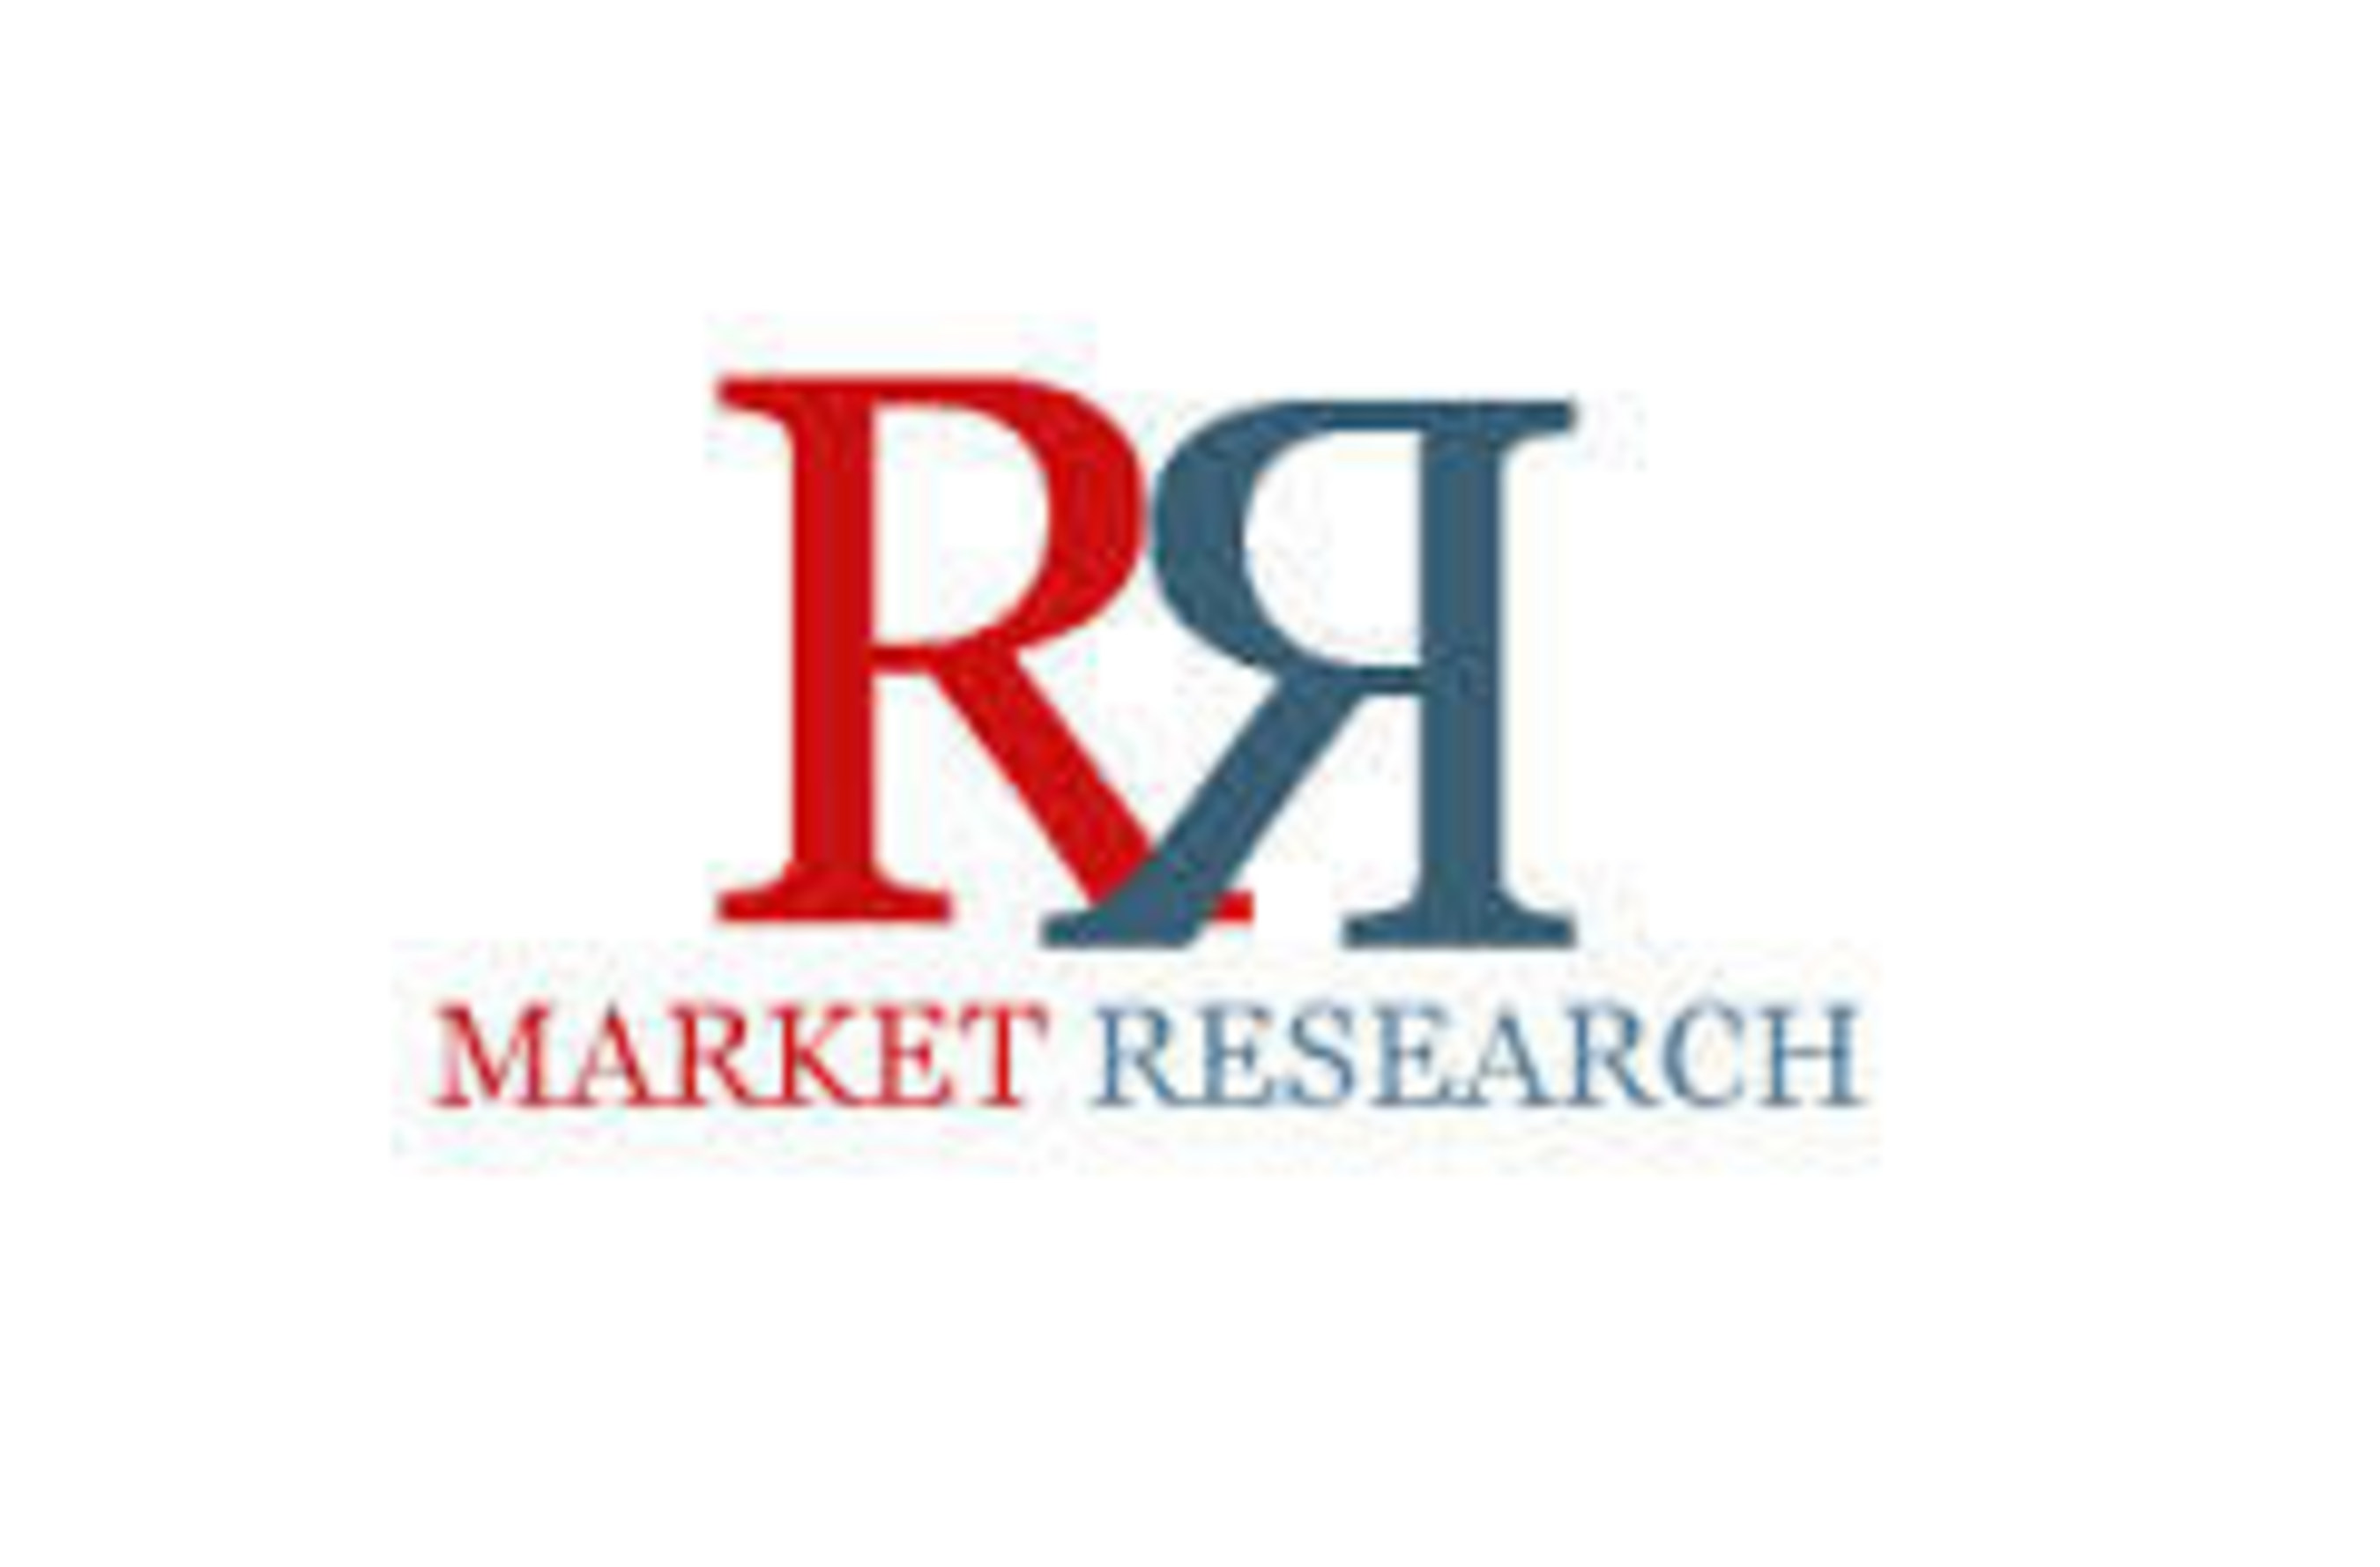 Cloud Managed Services Market Growing at 15.5% CAGR to 2020